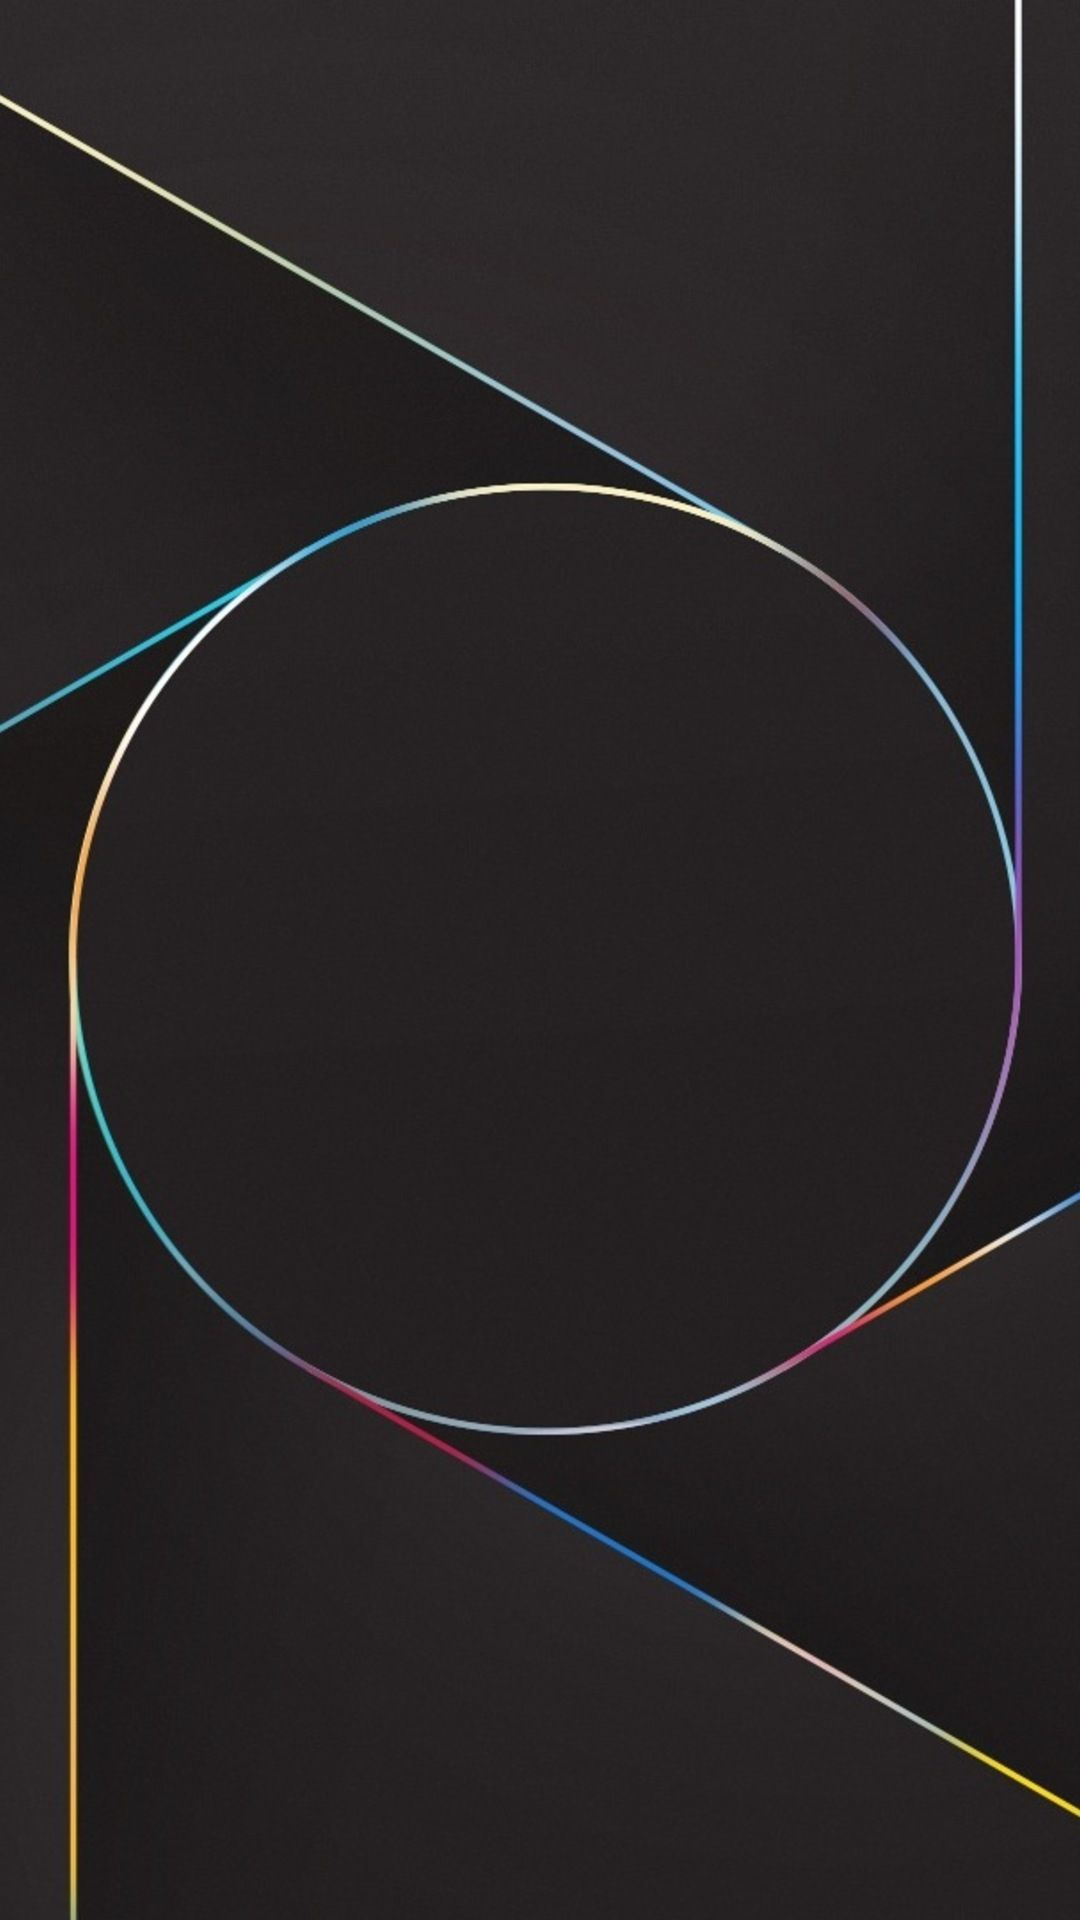 Abstract Lines Circle In 1080x1920 Resolution Abstract